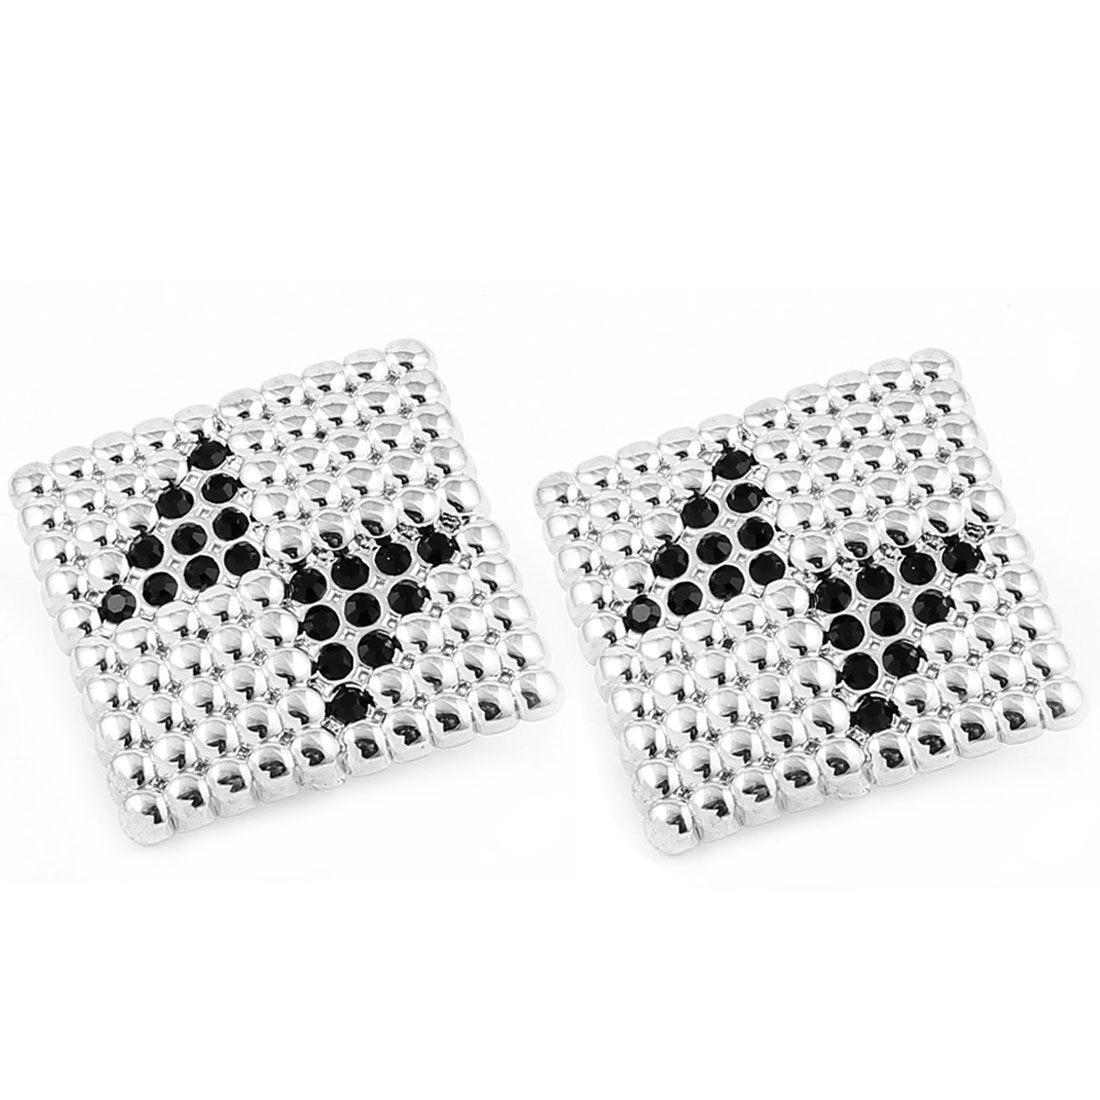 Pair Black Silver Tone Plastic Beads Inlaid Texture Rhombus Stud Earrings Ear Pin Nail for Lady